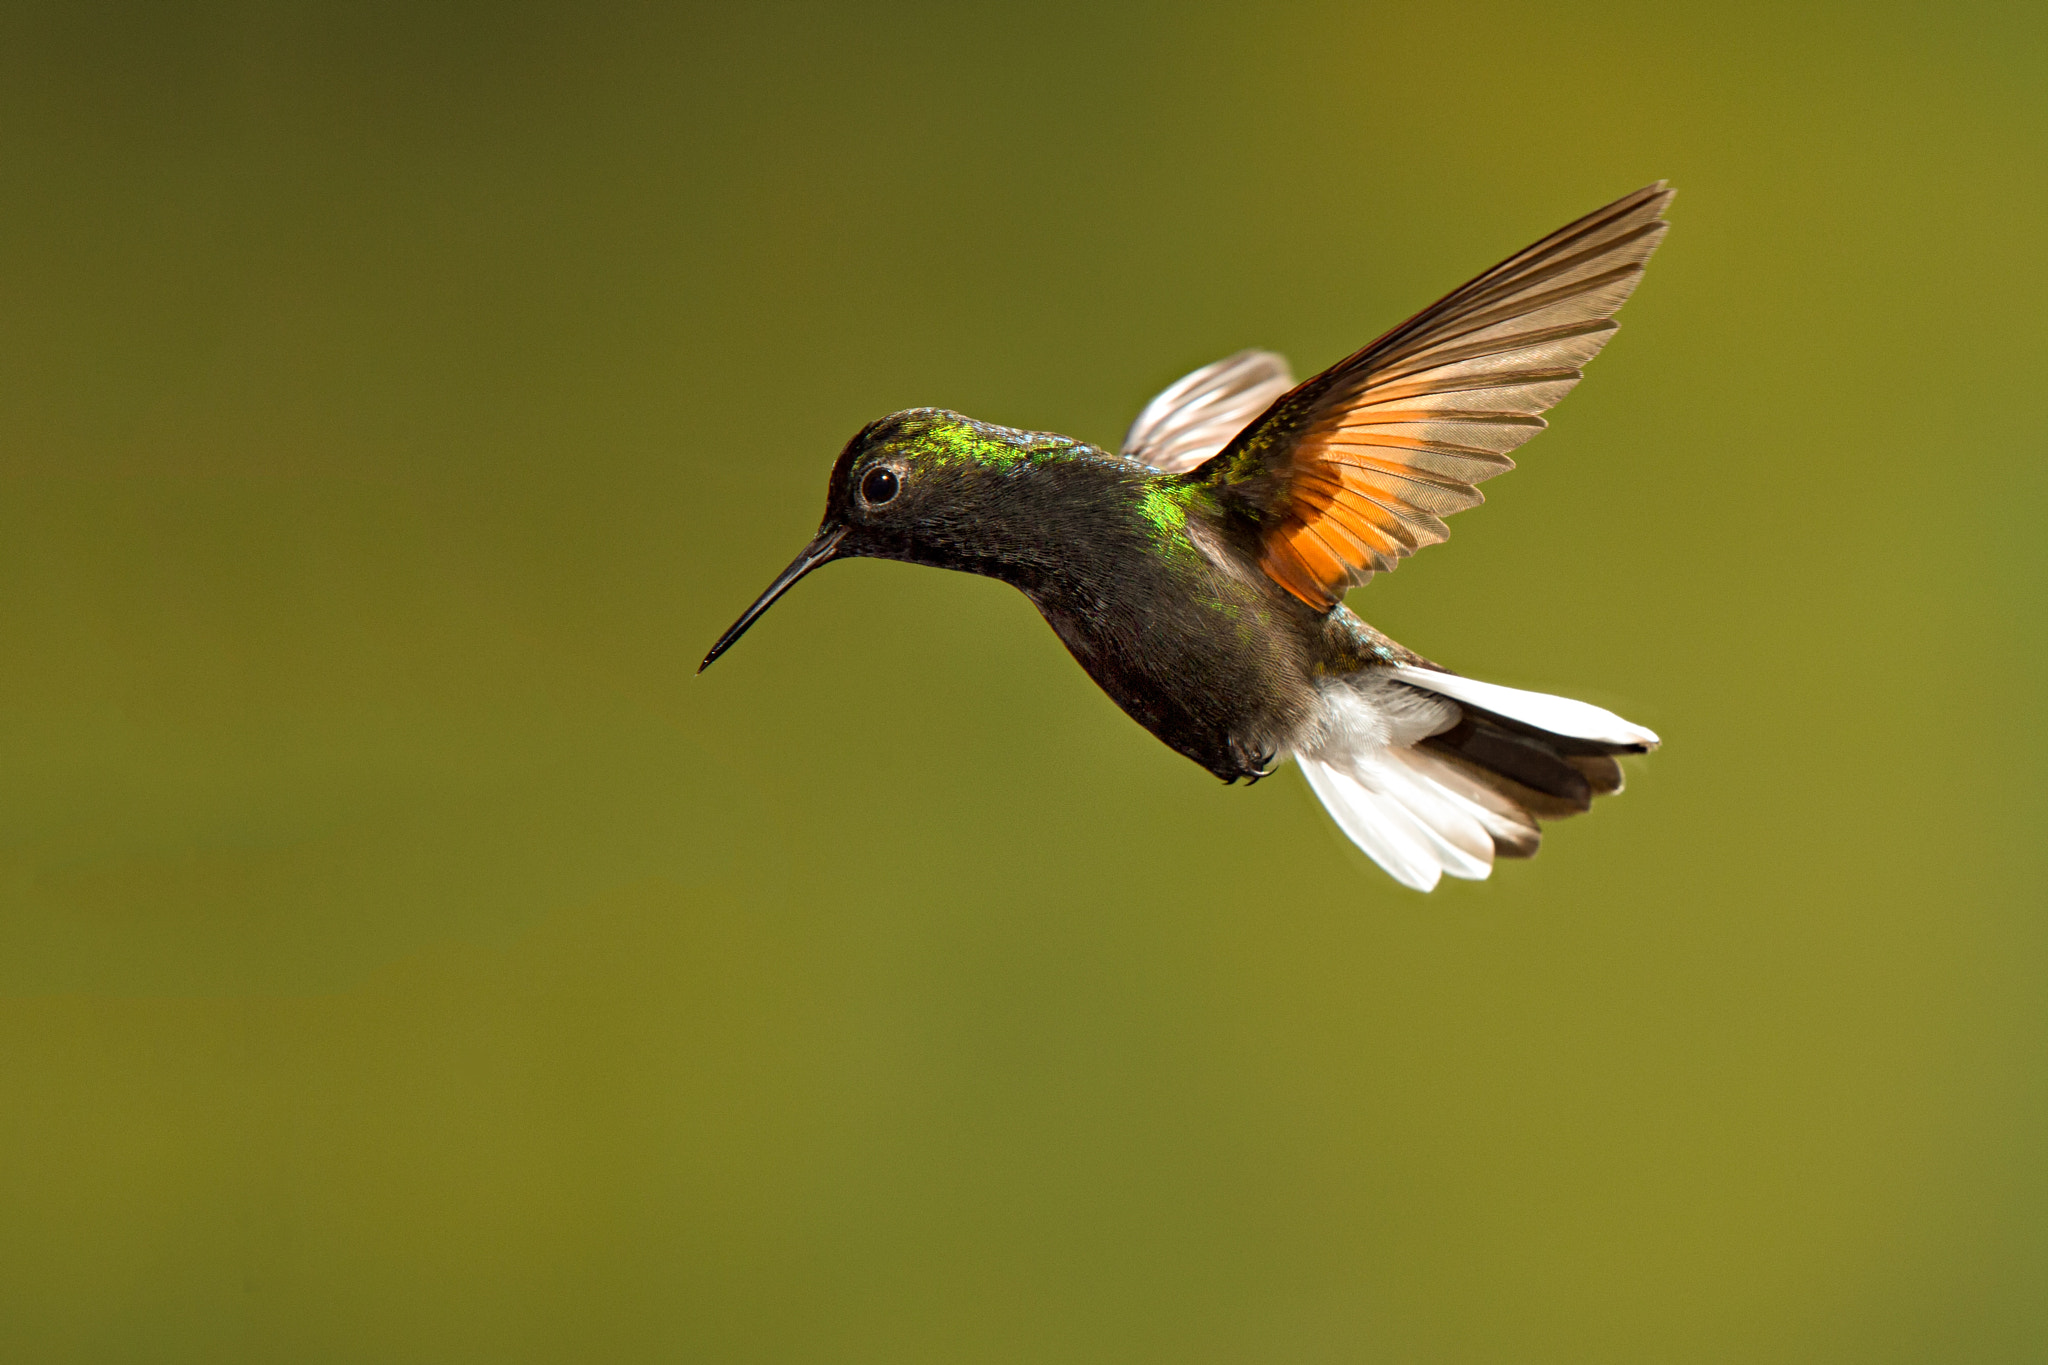 Photograph Black Bellied Hummingbird by Hali Sowle on 500px